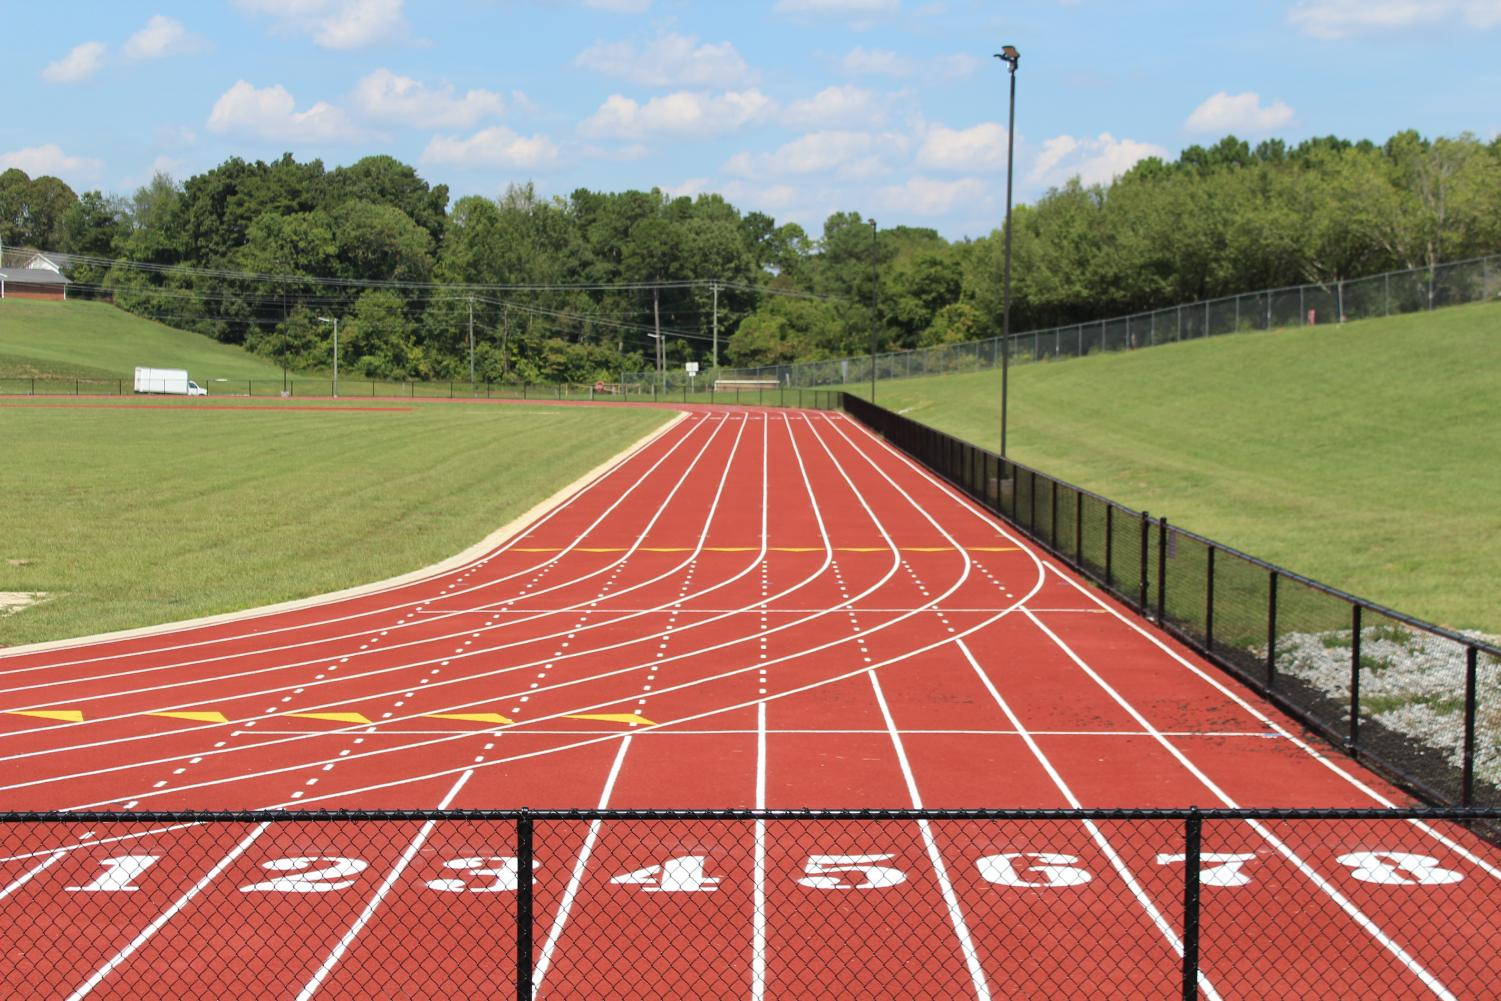 CENTRAL'S LATEST INSTALLMENT IS RIGHT ON TRACK -- Construction on Central's track is finally completed, and it proudly sports eight lanes.